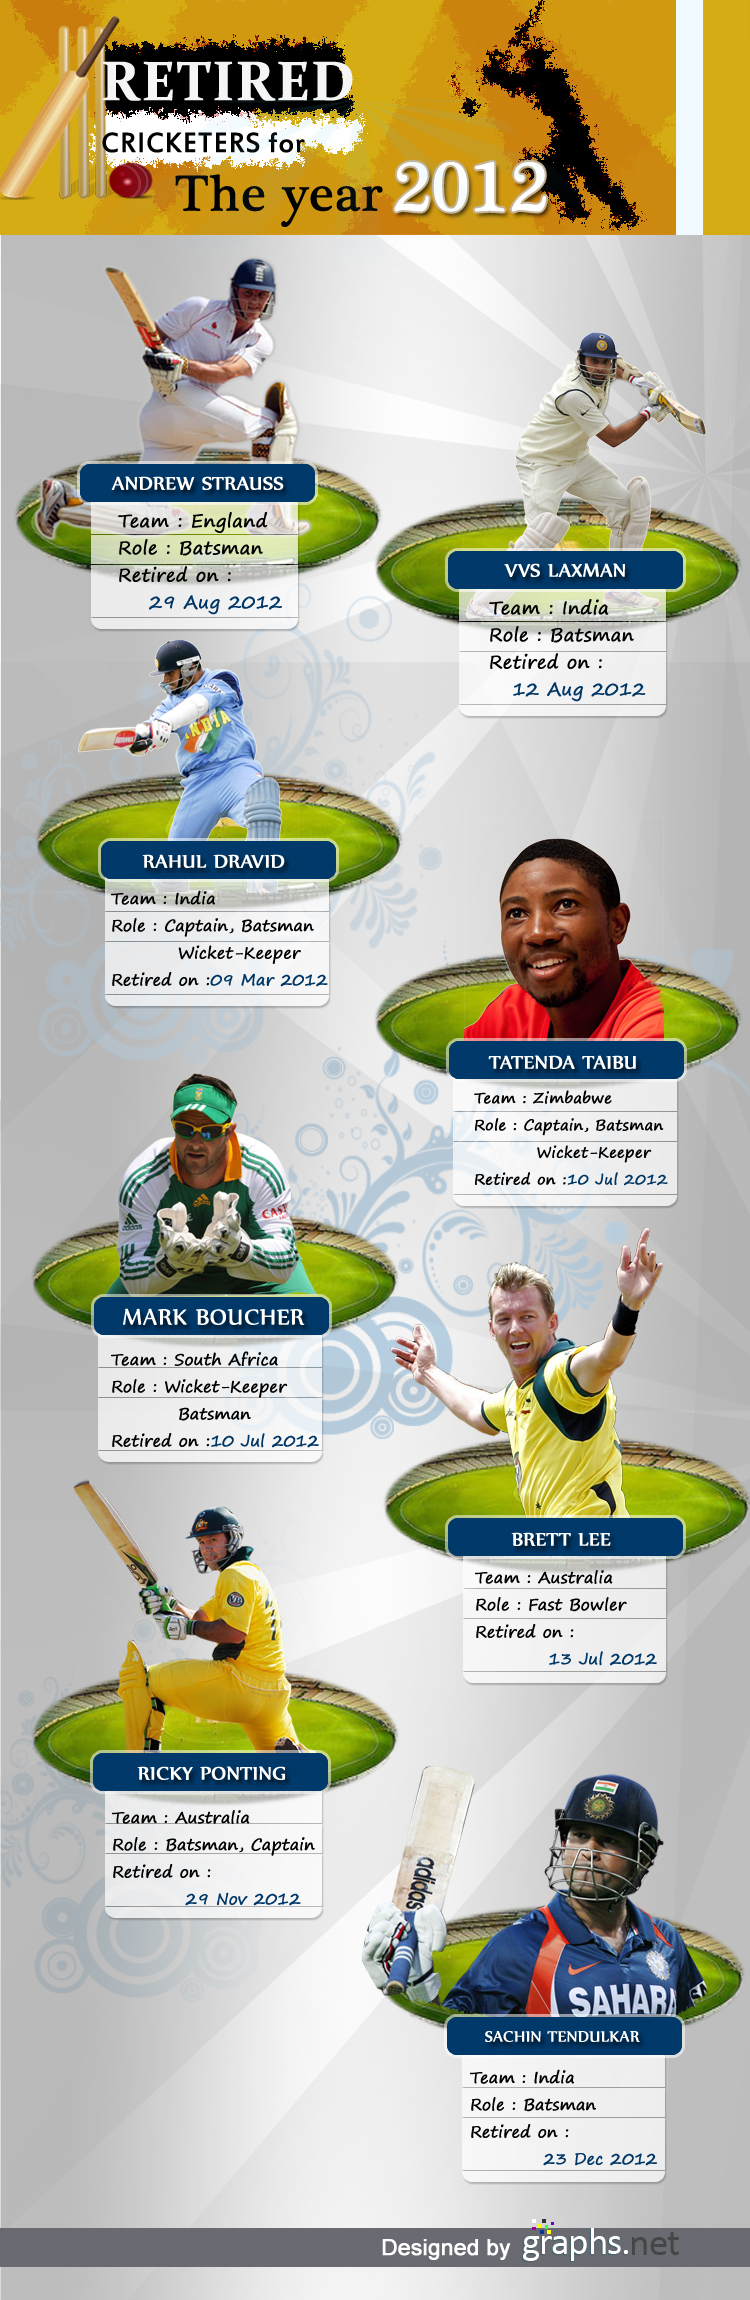 Retired Cricketers for the year 2012